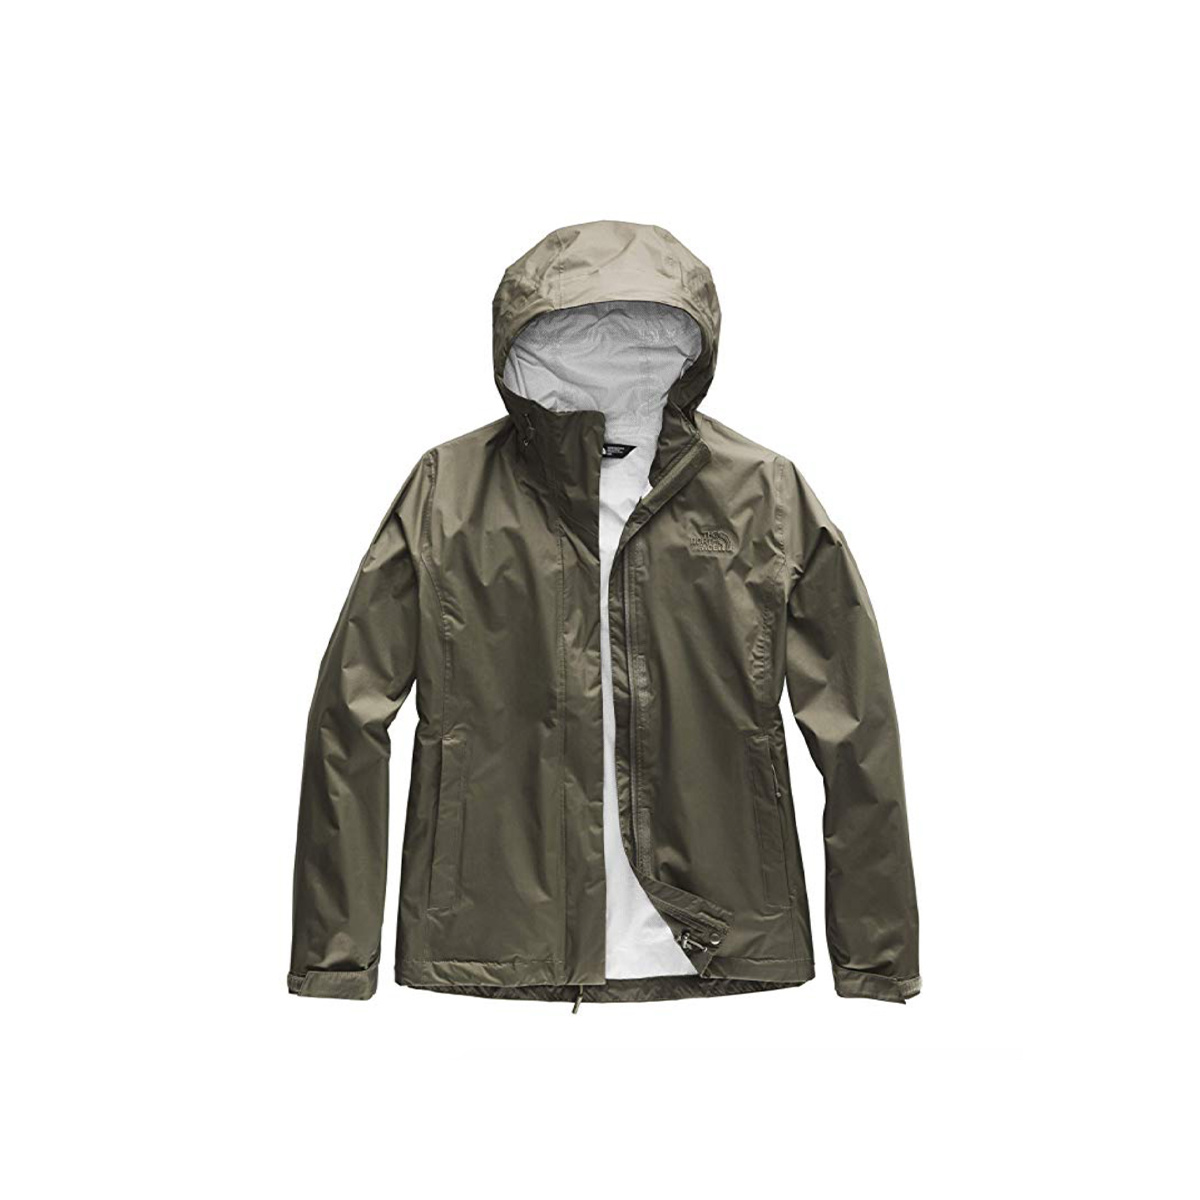 b25f68aa9 The North Face Women's Venture 2 Jacket